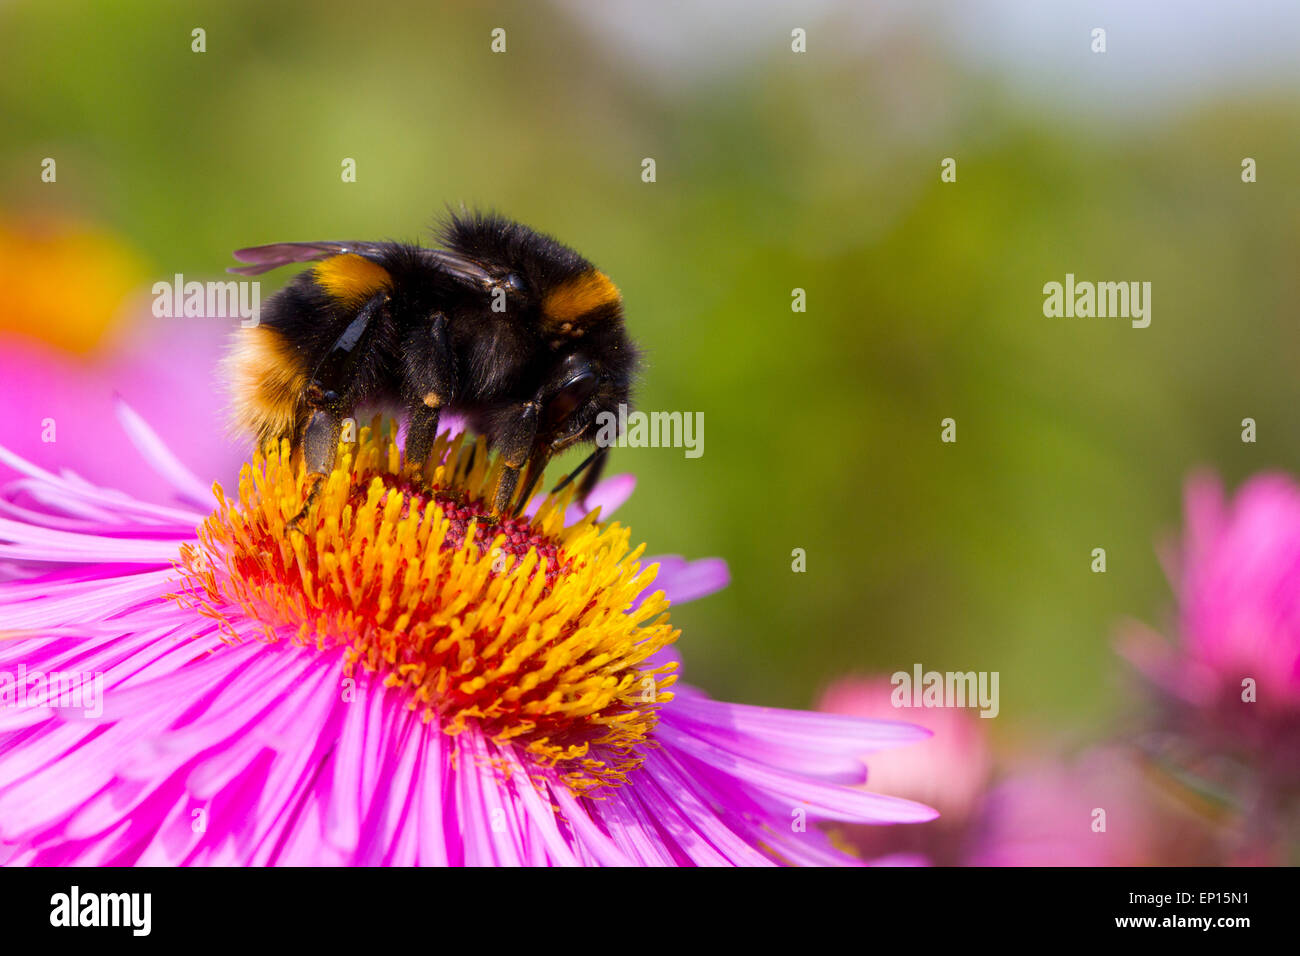 Buff-tailed Bumblebee (Bombus terrestris) new queen feeding on Michealmas Daisy (Aster sp.) flowers in garden, Powys, - Stock Image